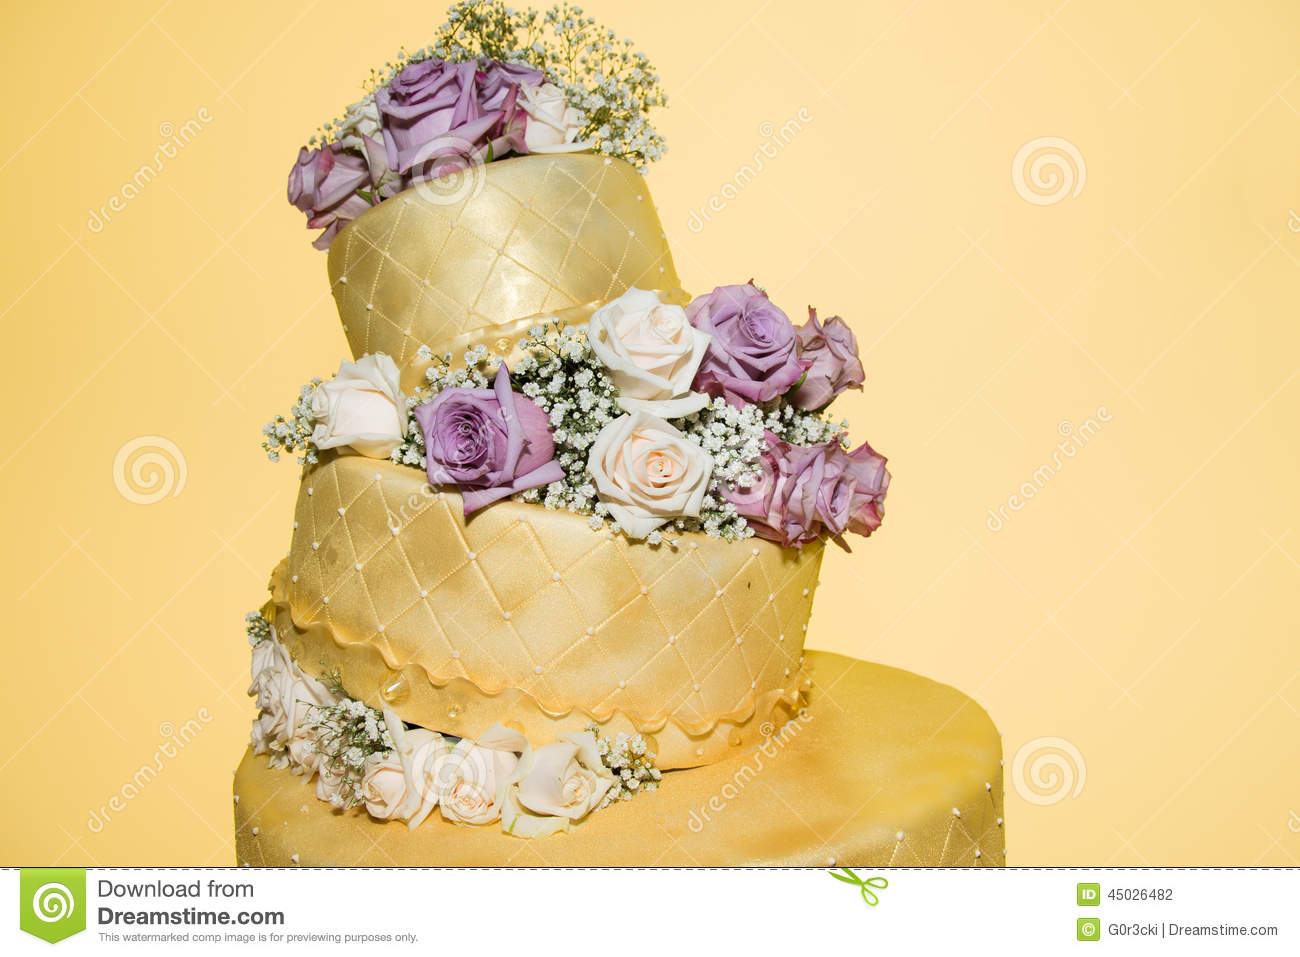 Modern wedding cakes for the holiday: Decorations for golden wedding ...